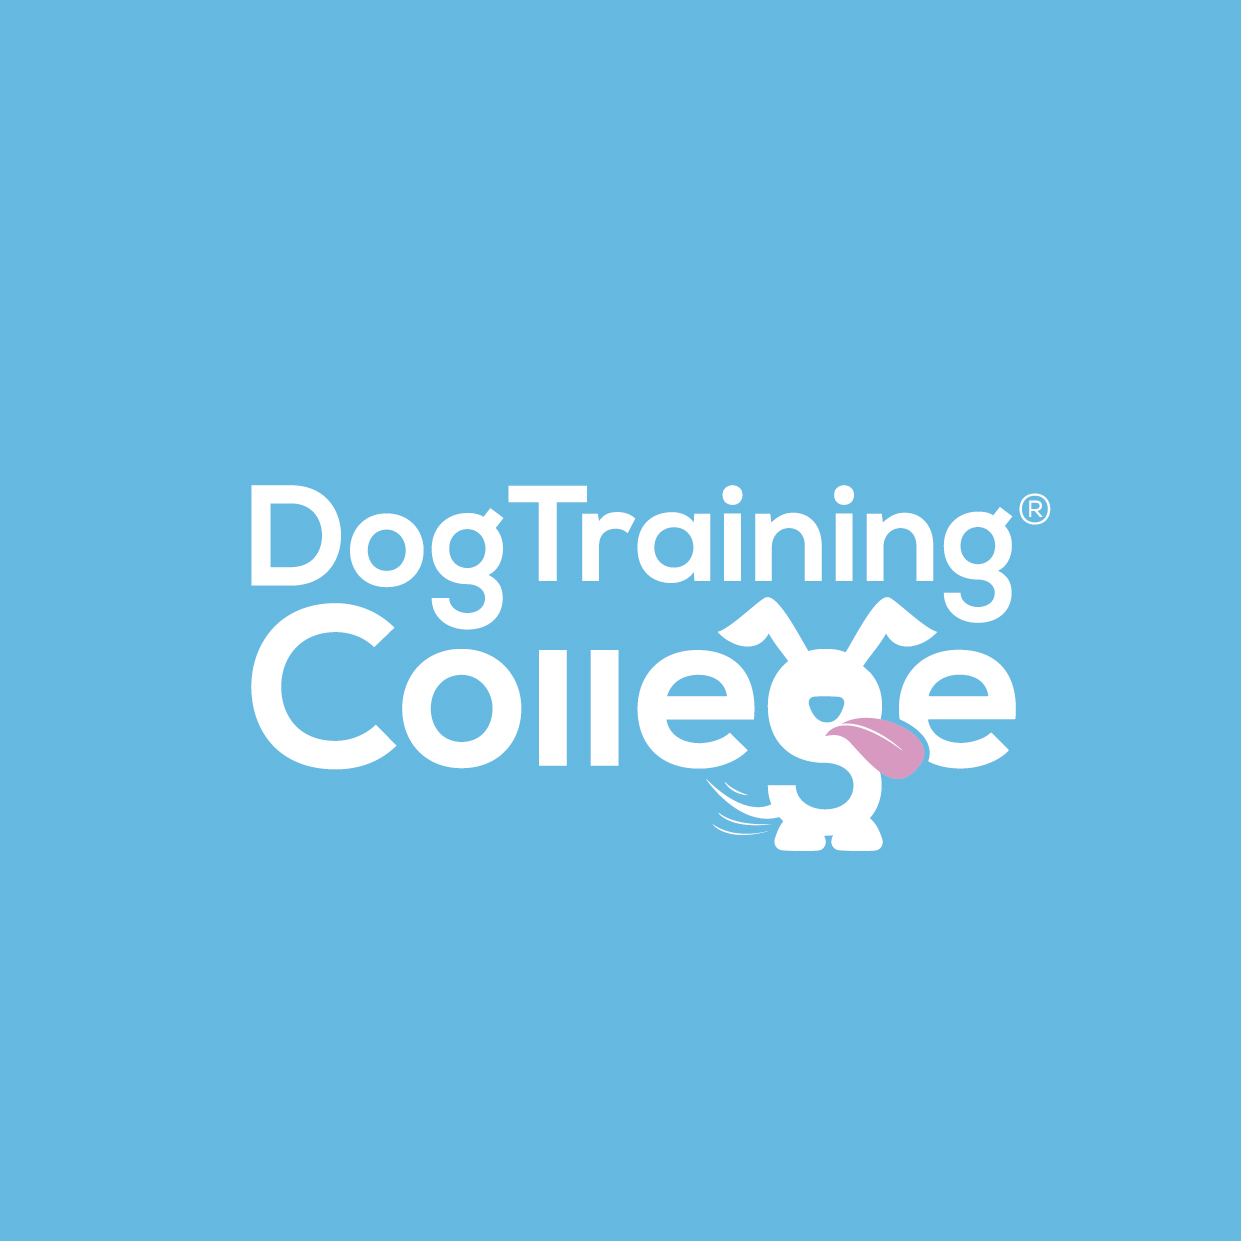 Dog Training College Brand Guidelines 2019-01.jpg